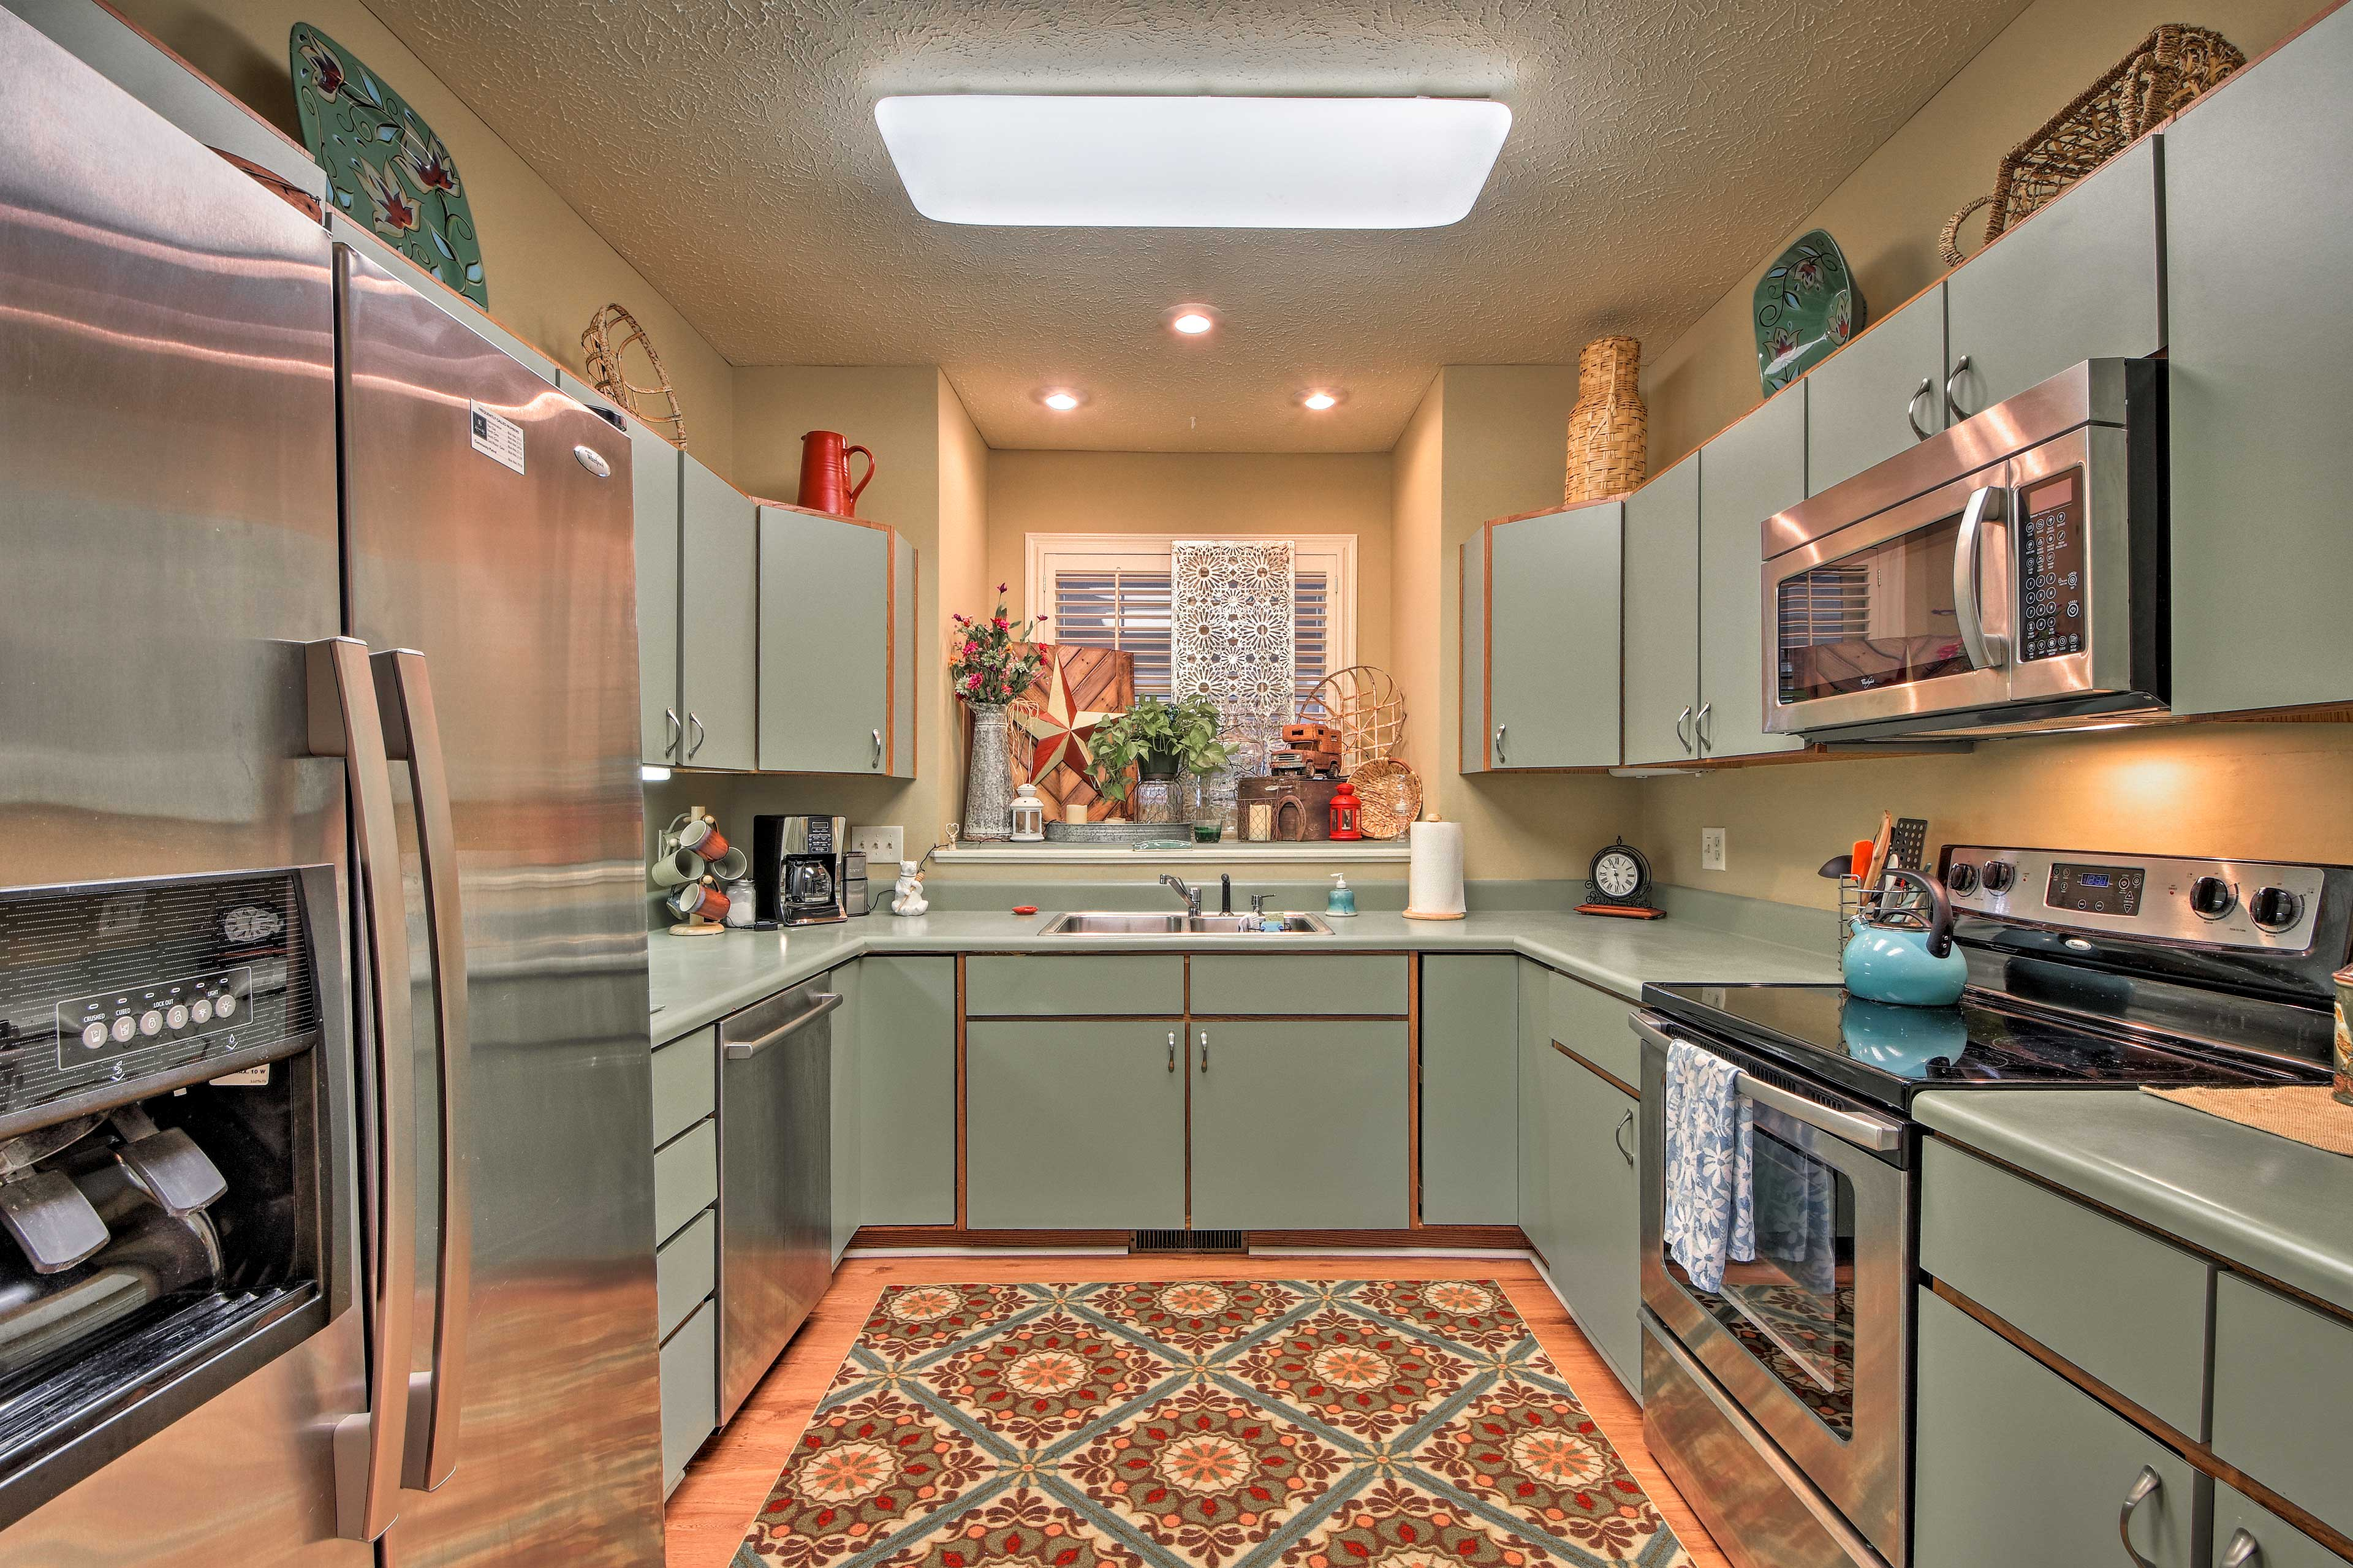 The kitchen is furnished with stainless steel appliances!